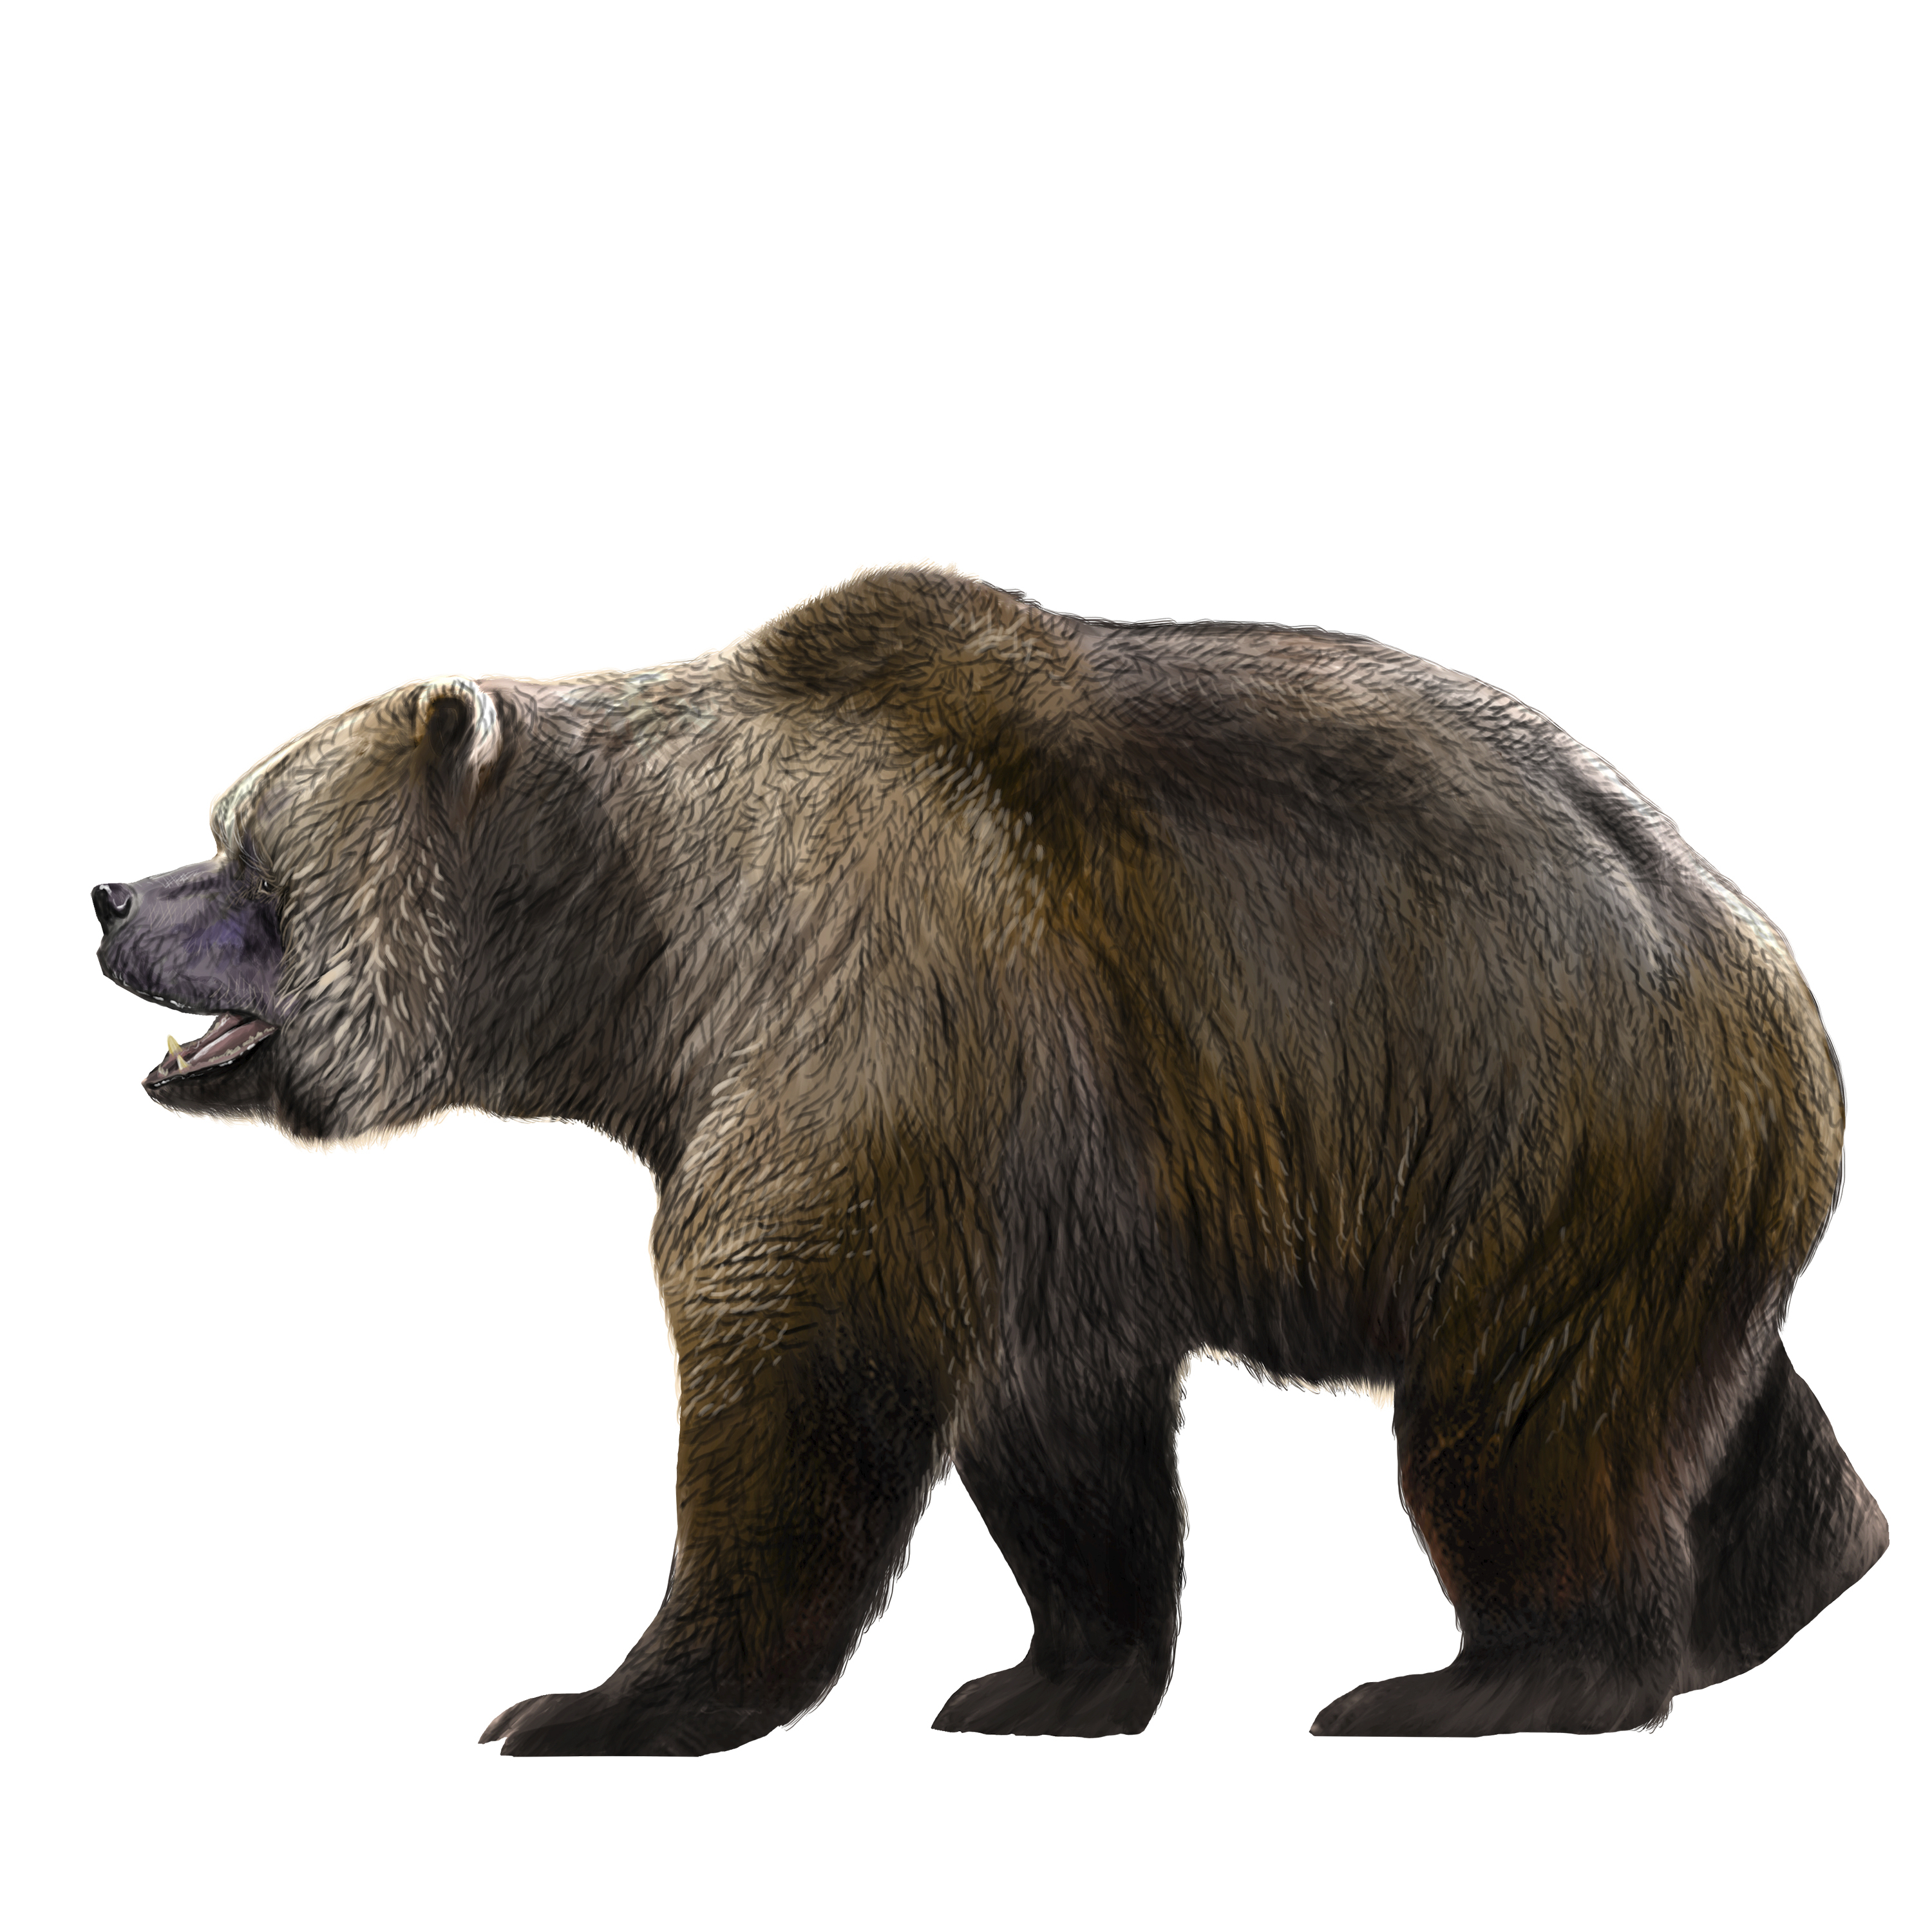 A bear twice your height